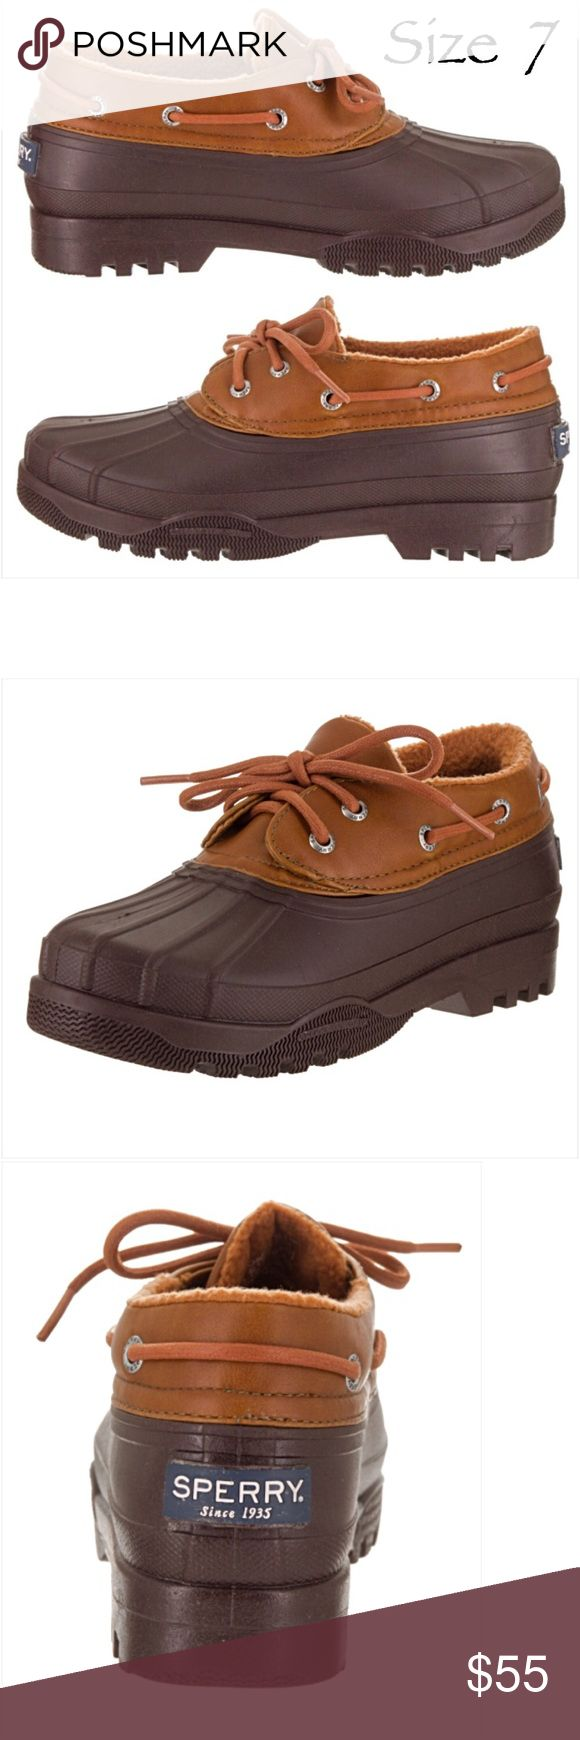 Size 7 Sperry Duck Rain Waterproof Shoe NEW Amazing Sperry Top Sider rubber duck boots shoes in brown cognac. Stay dry & cute in these waterproof leather & rubber shoes. Lace up closure for secure fit & thick rubber soles with great traction. Perfect in snow or rain!  True to size NEW Without Tags/Box Size 7 Sperry Shoes Winter & Rain Boots